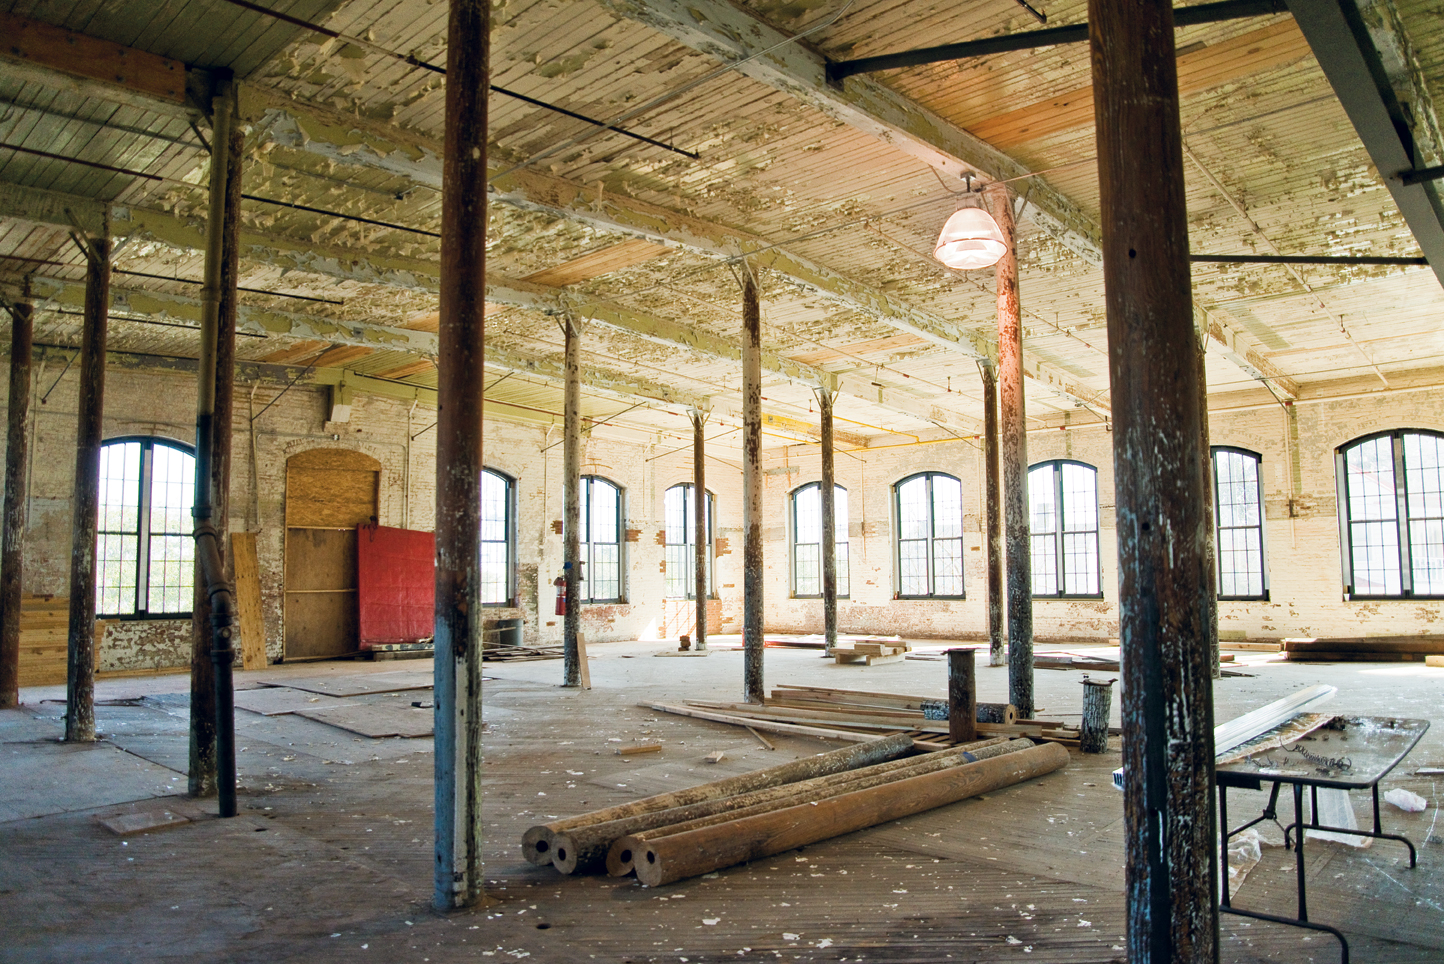 Good Bones: Palmer's three new projects will occupy 75,000 square feet of the historical Cigar Factory building.